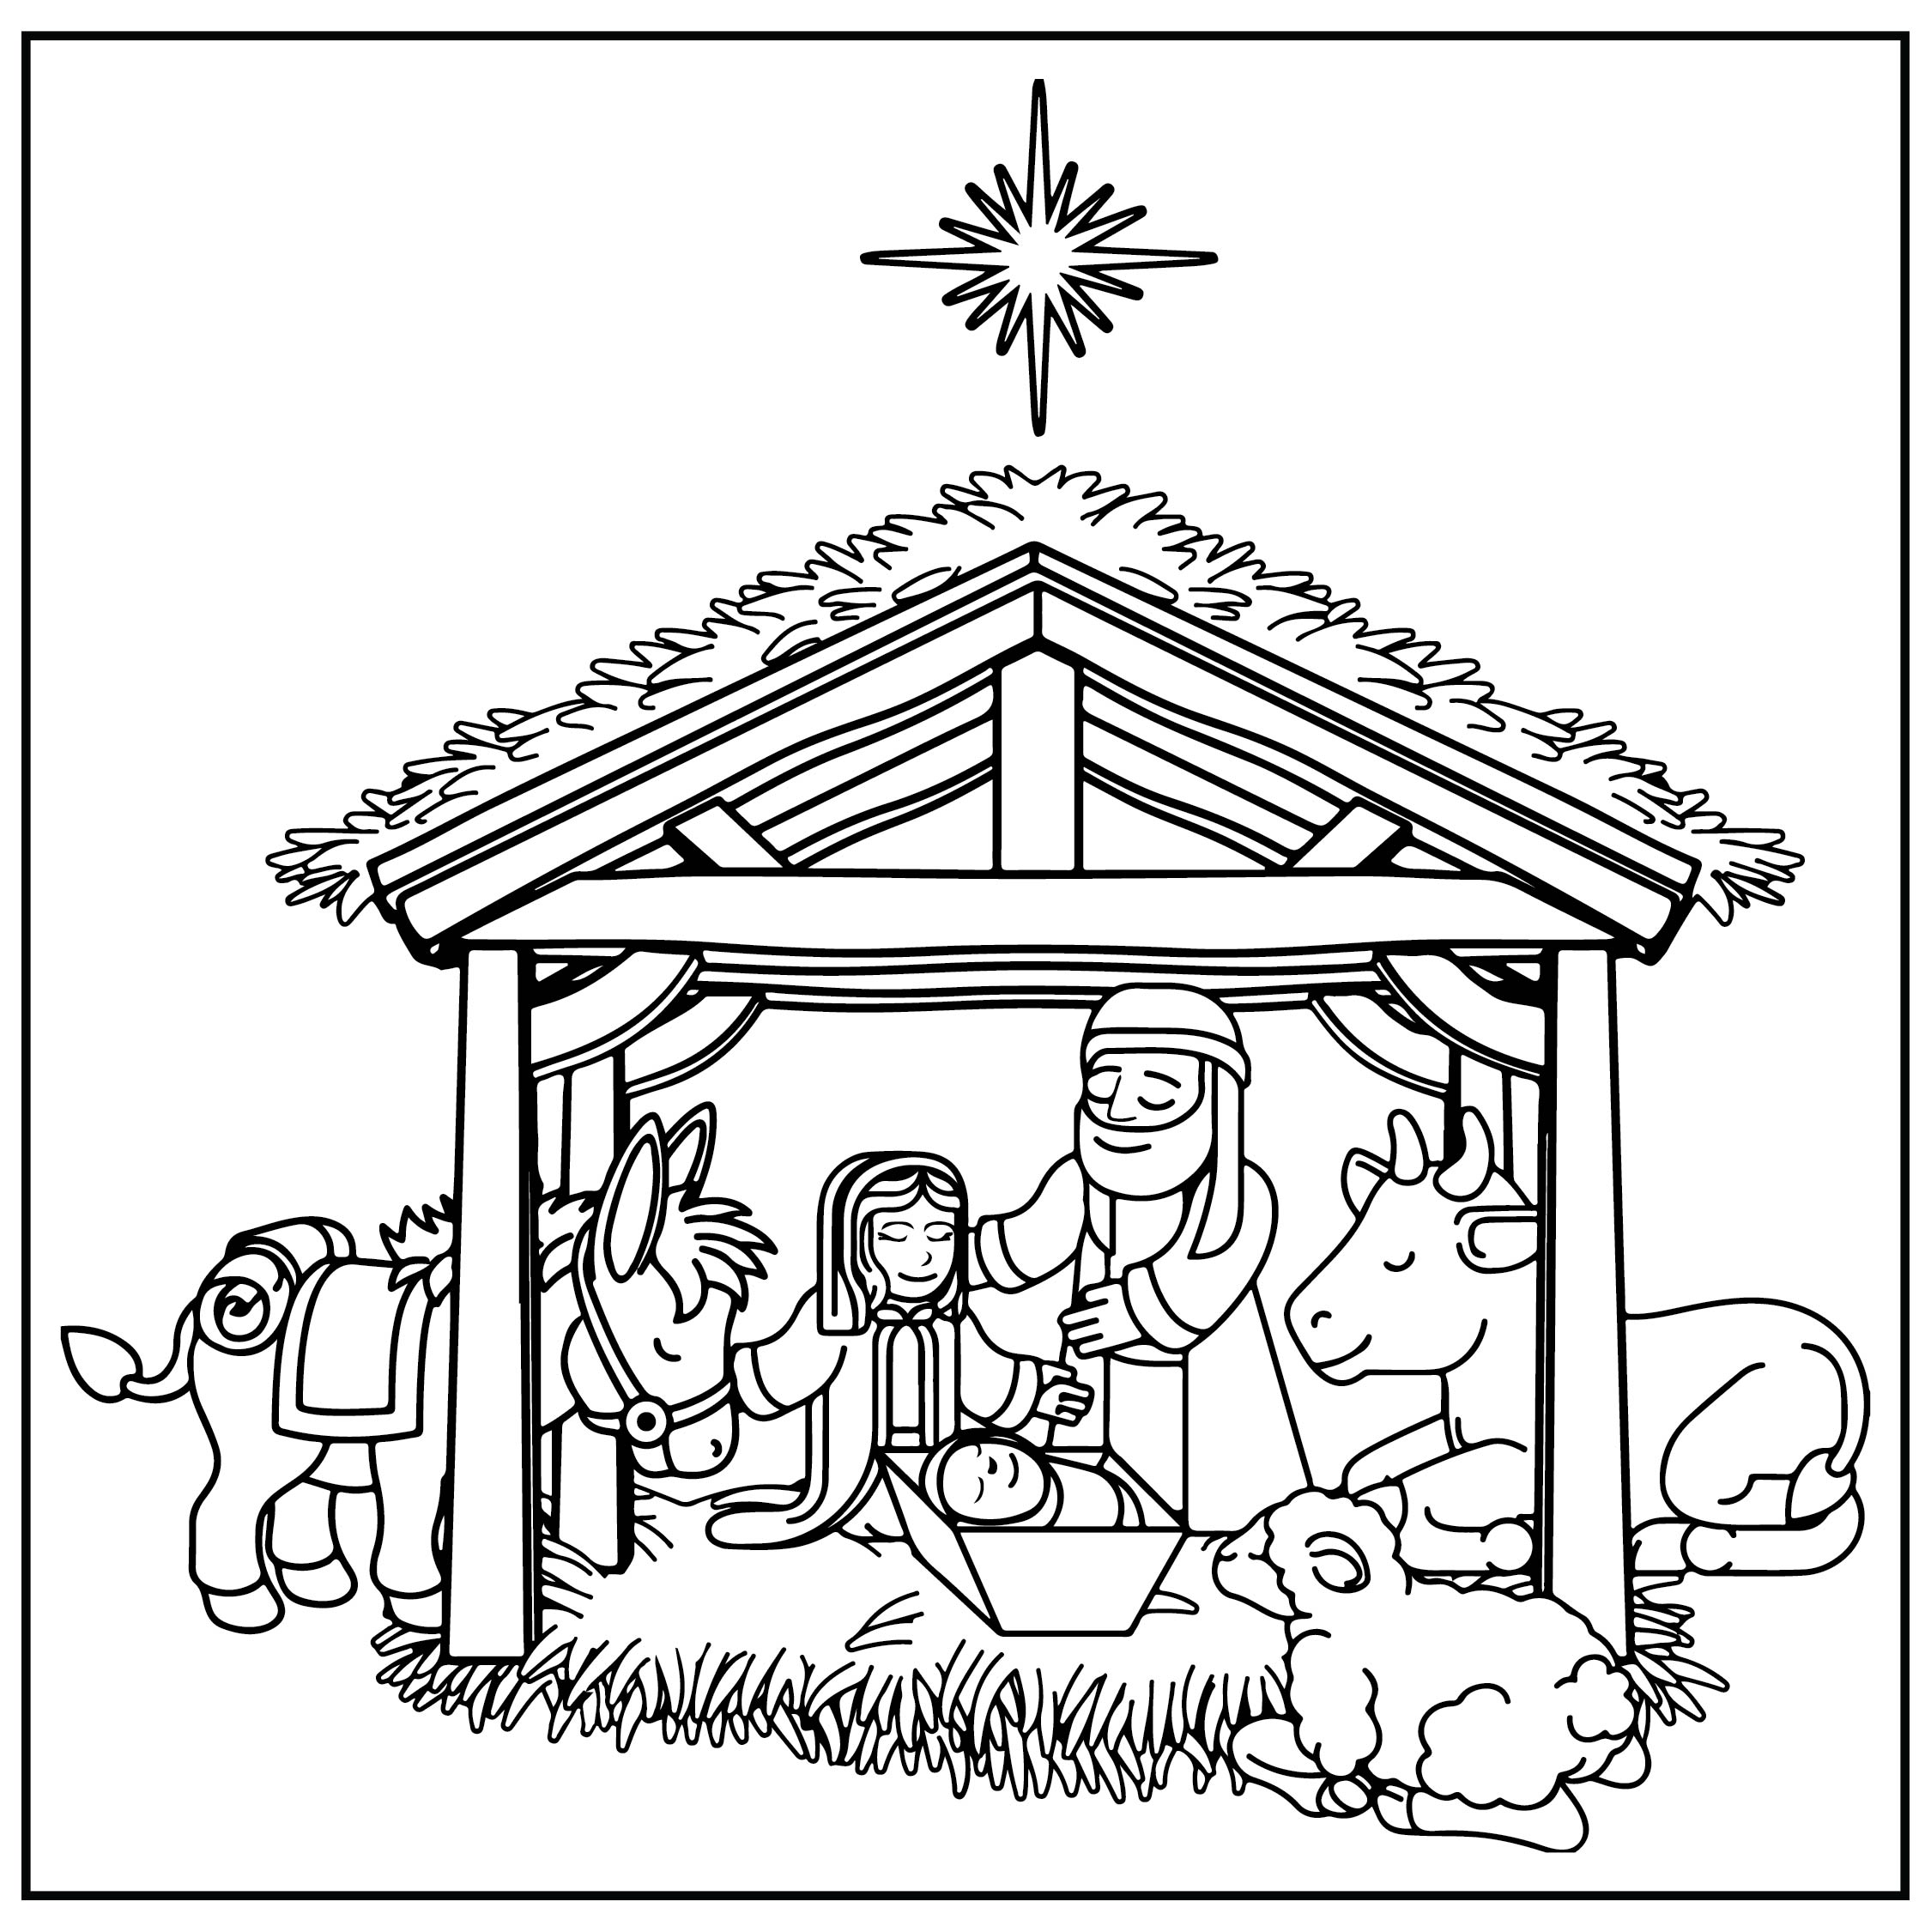 6 Images of Christmas Nativity Scene Coloring Page Printable